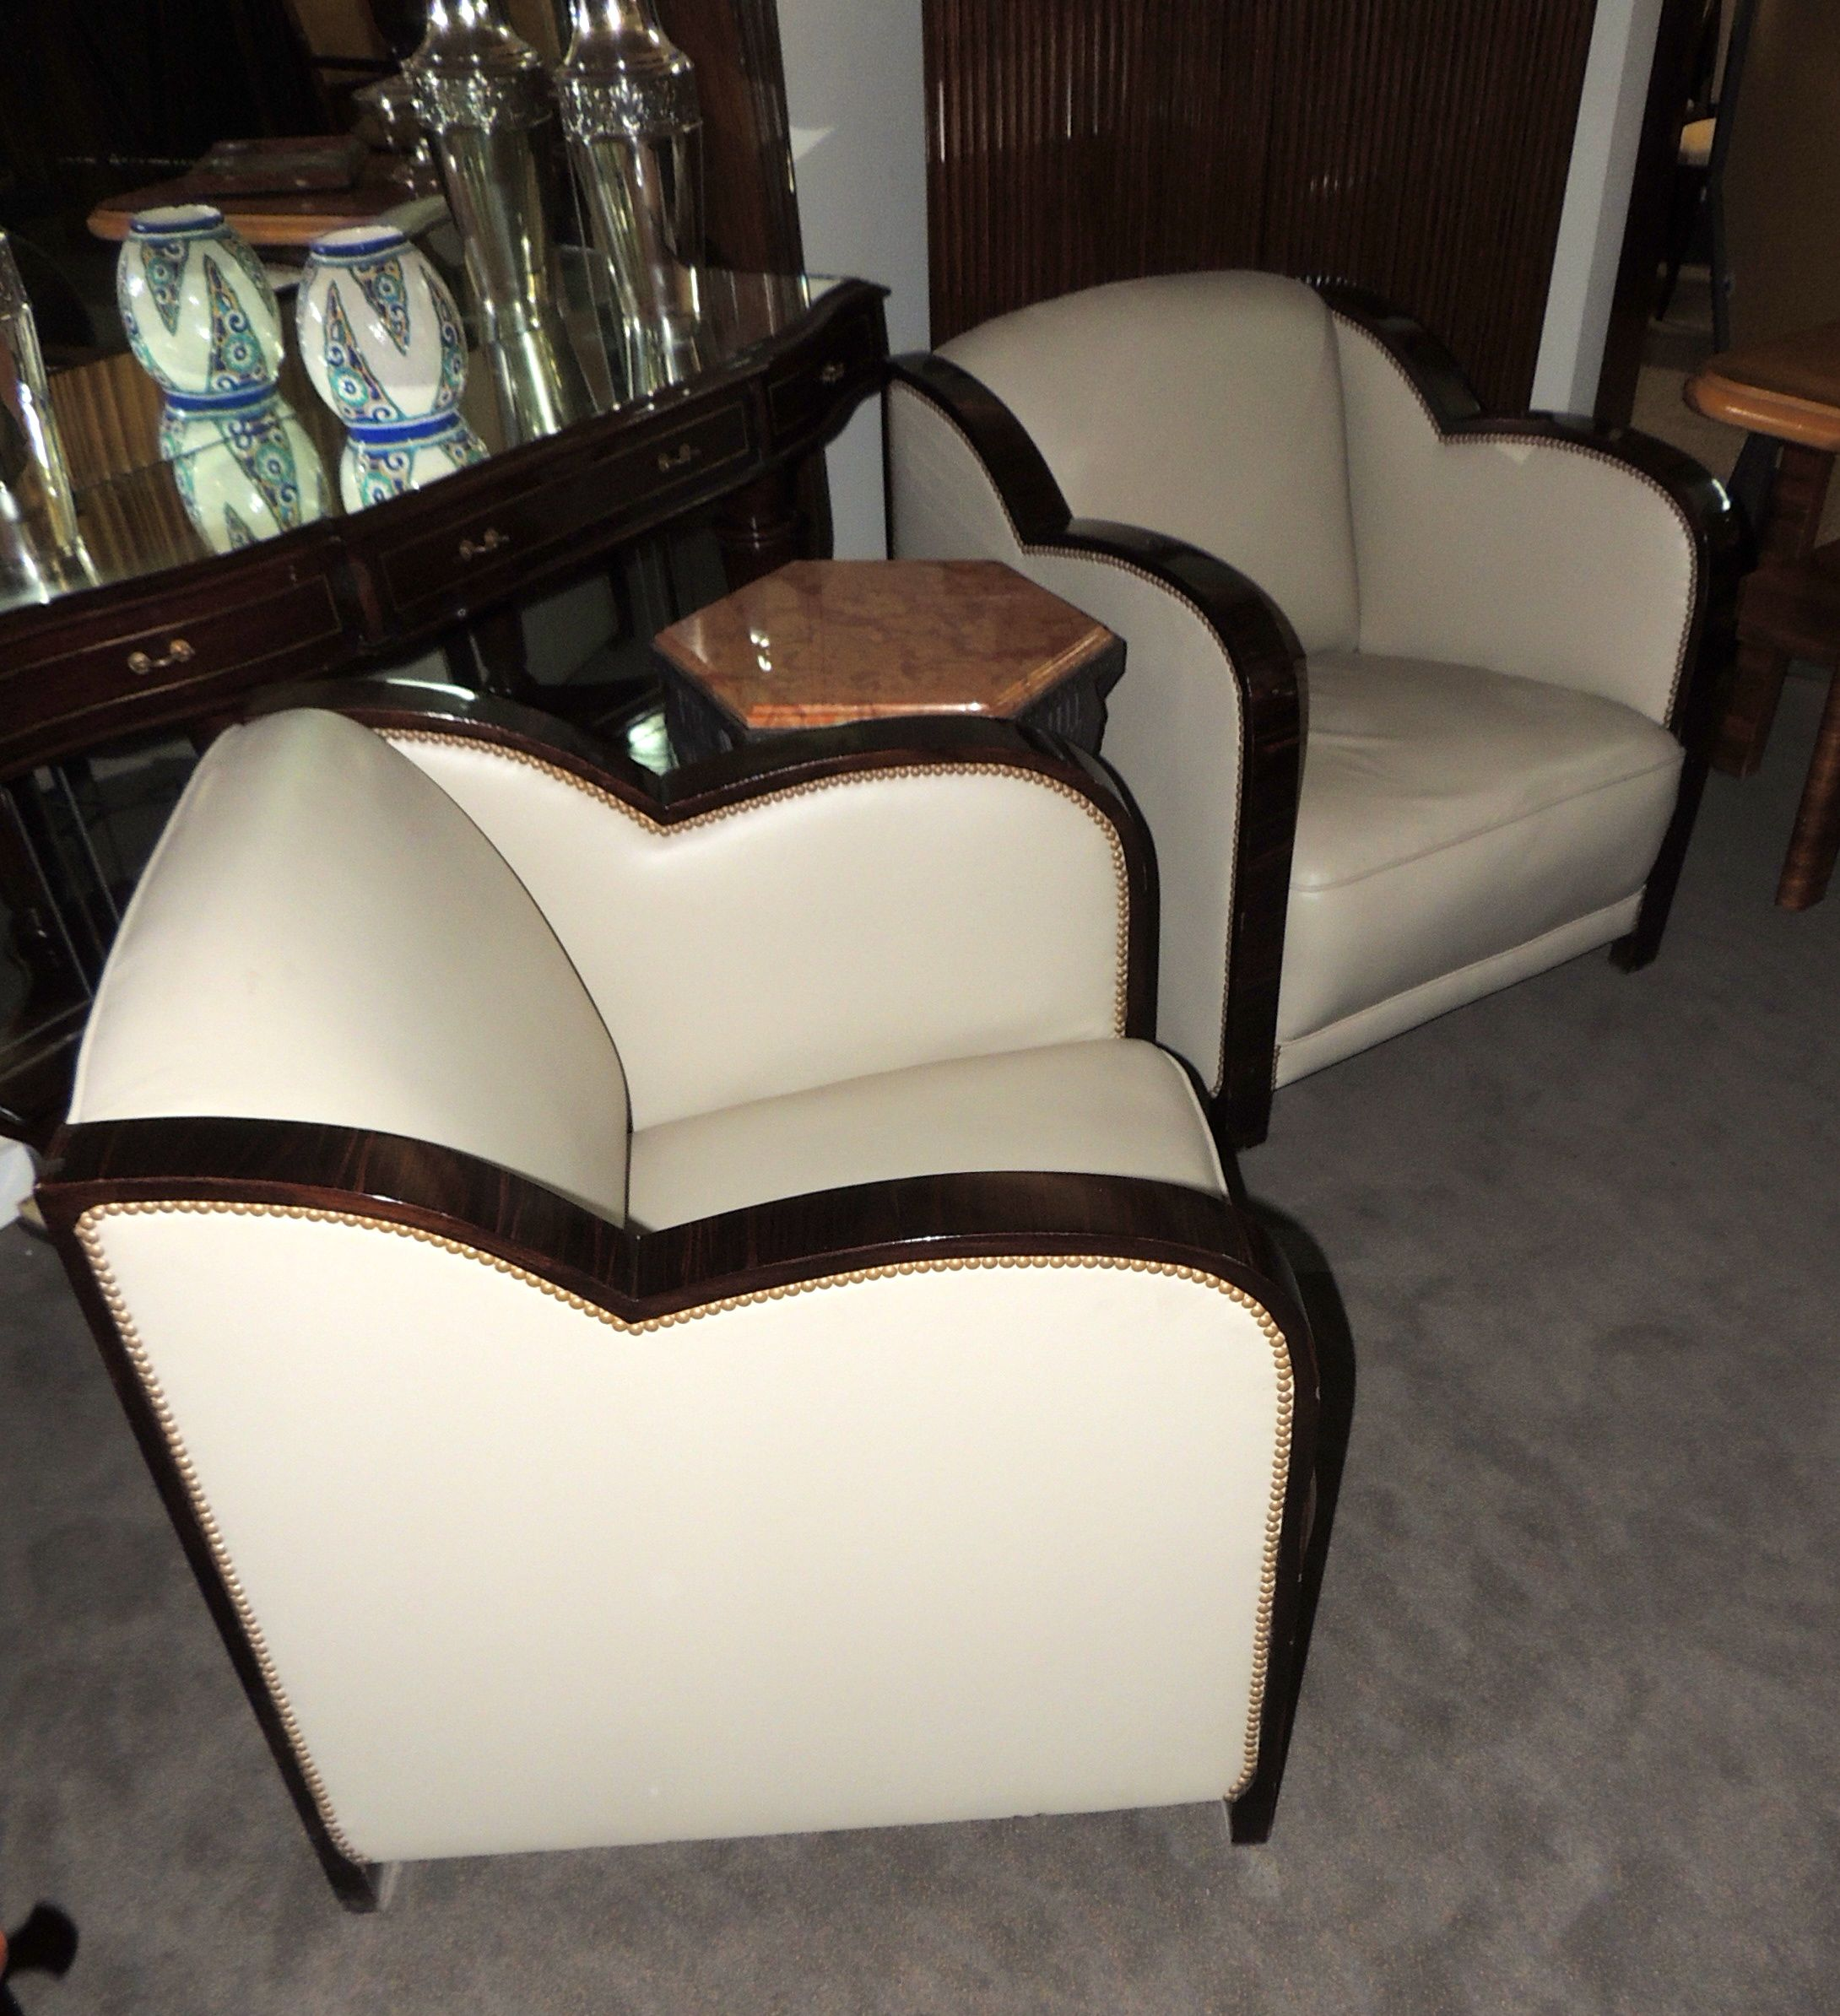 Burgundy Carpet Bedroom Small Bedroom Cupboards Designs Bedroom Chandeliers Next Cream Bedroom Chairs: Art Deco French Style Leather Club Chairs